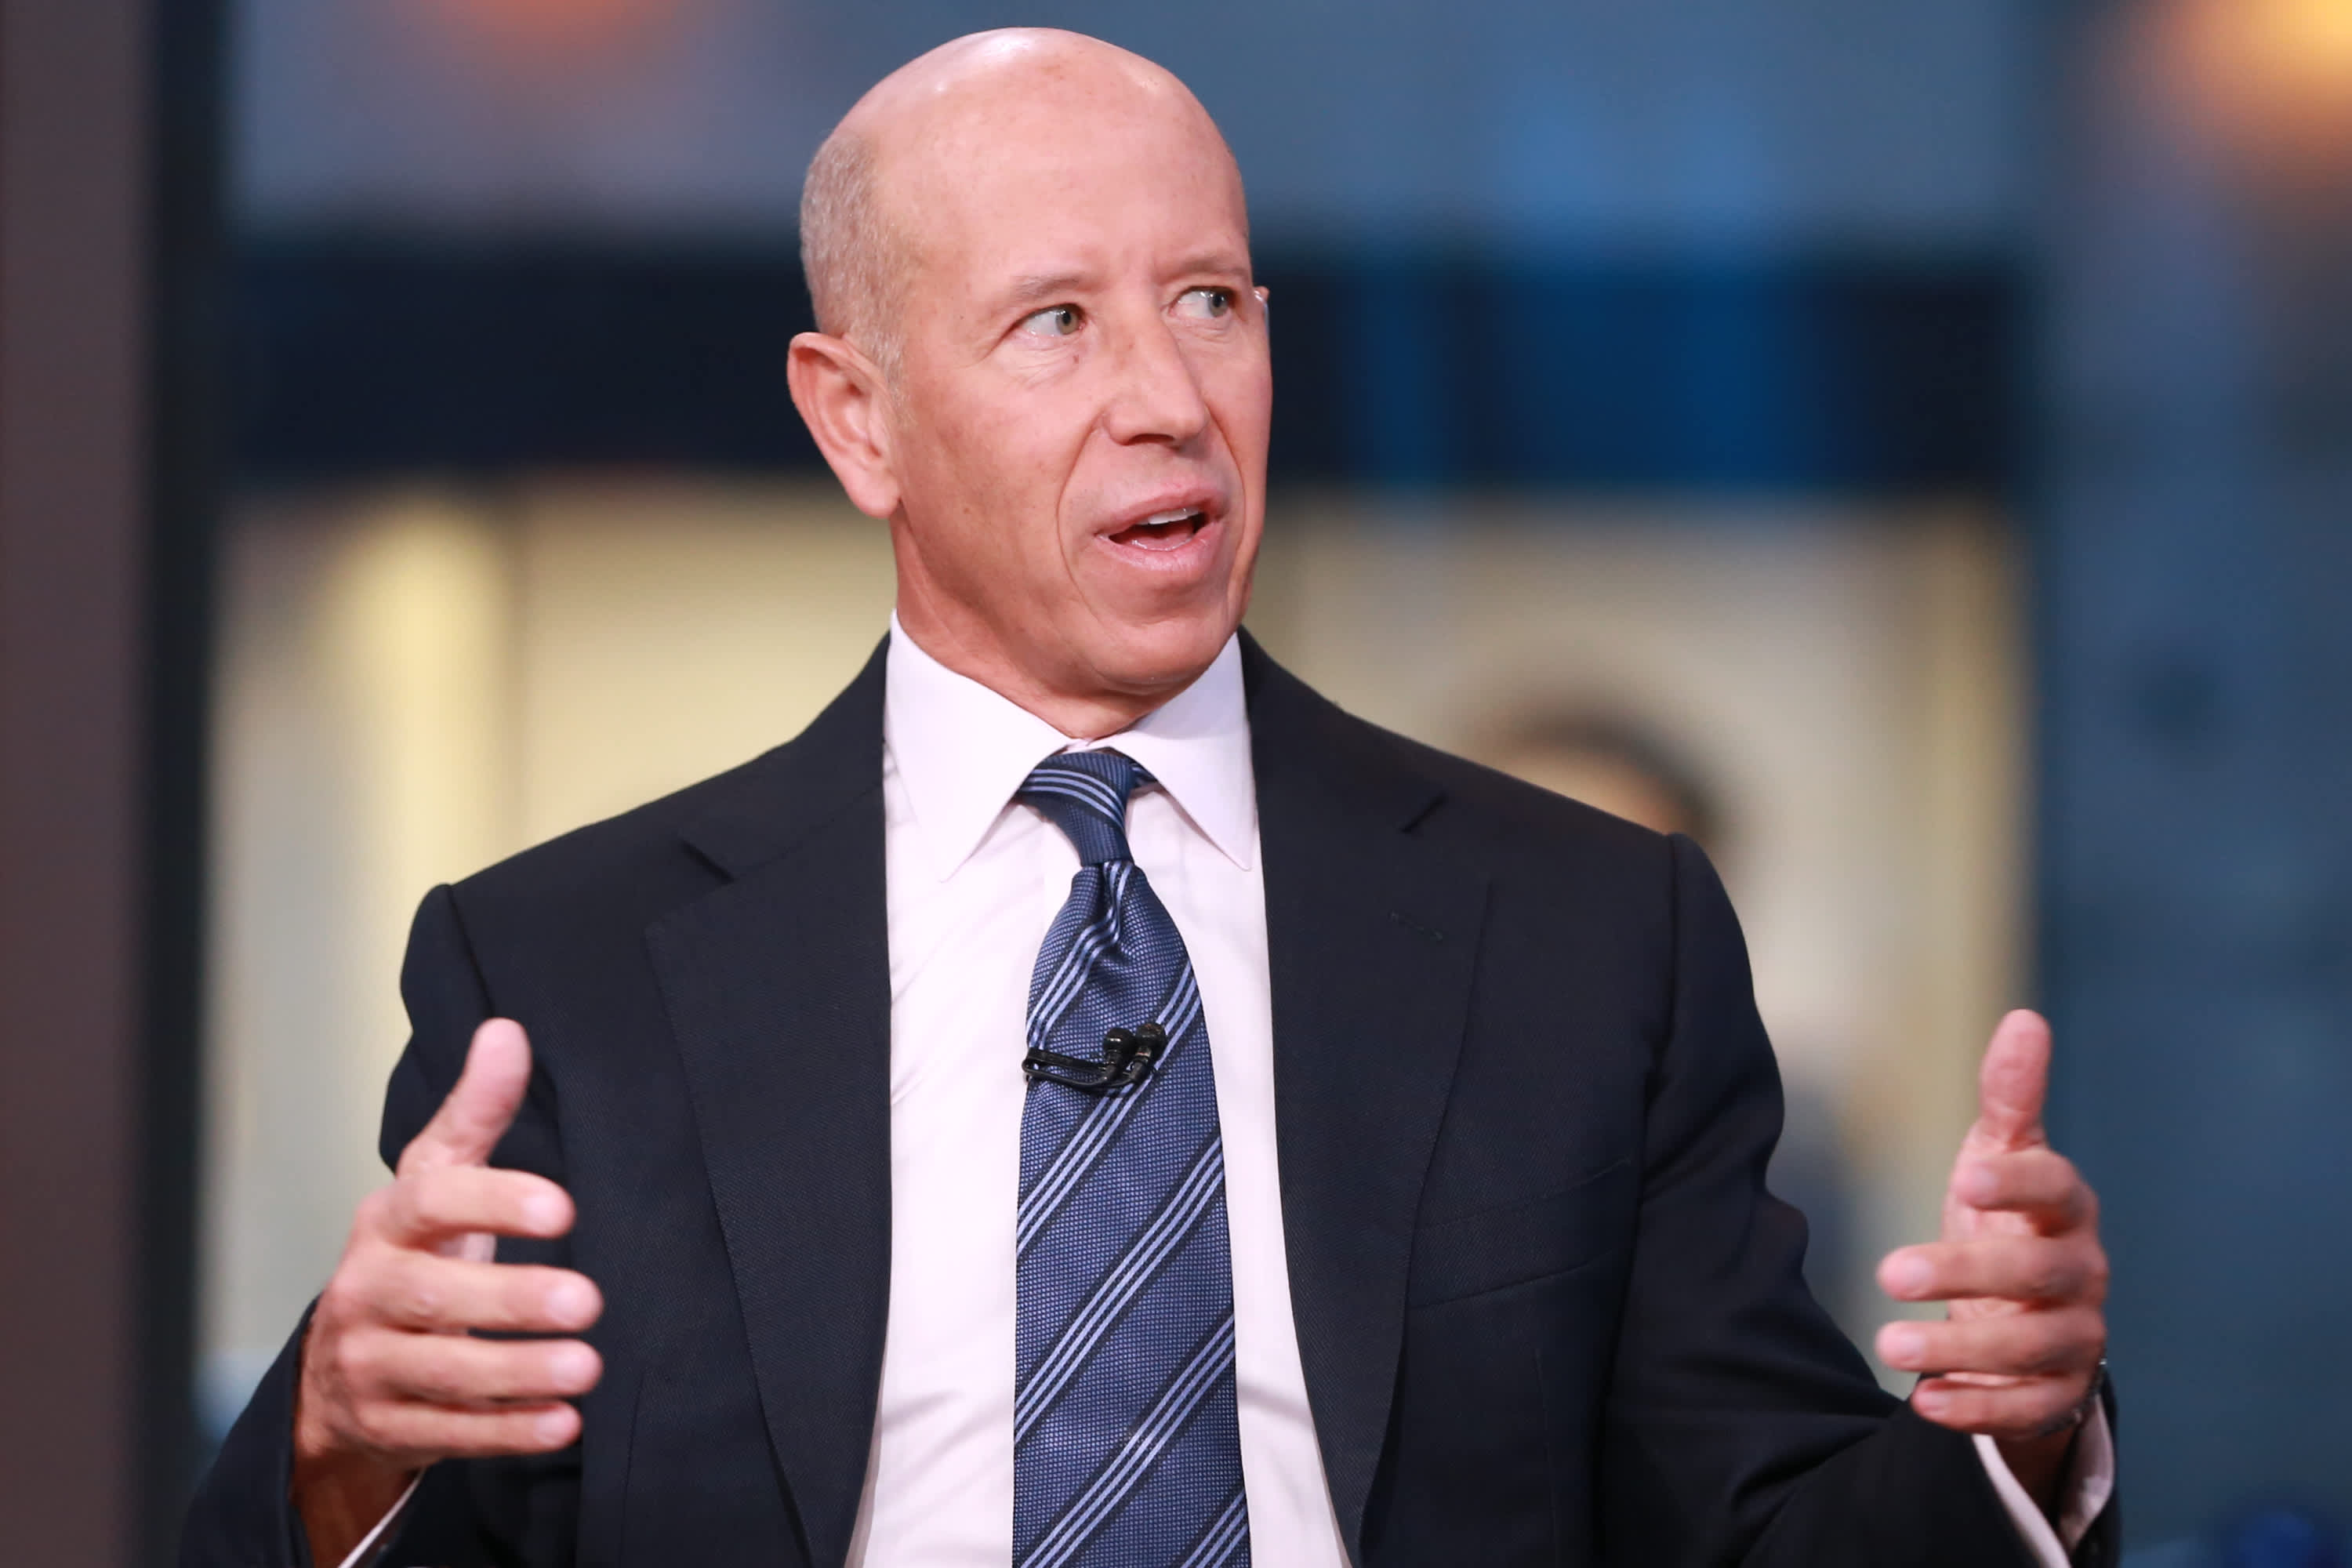 Billionaire investor Barry Sternlicht says he has long-term concerns about the U.S. economy